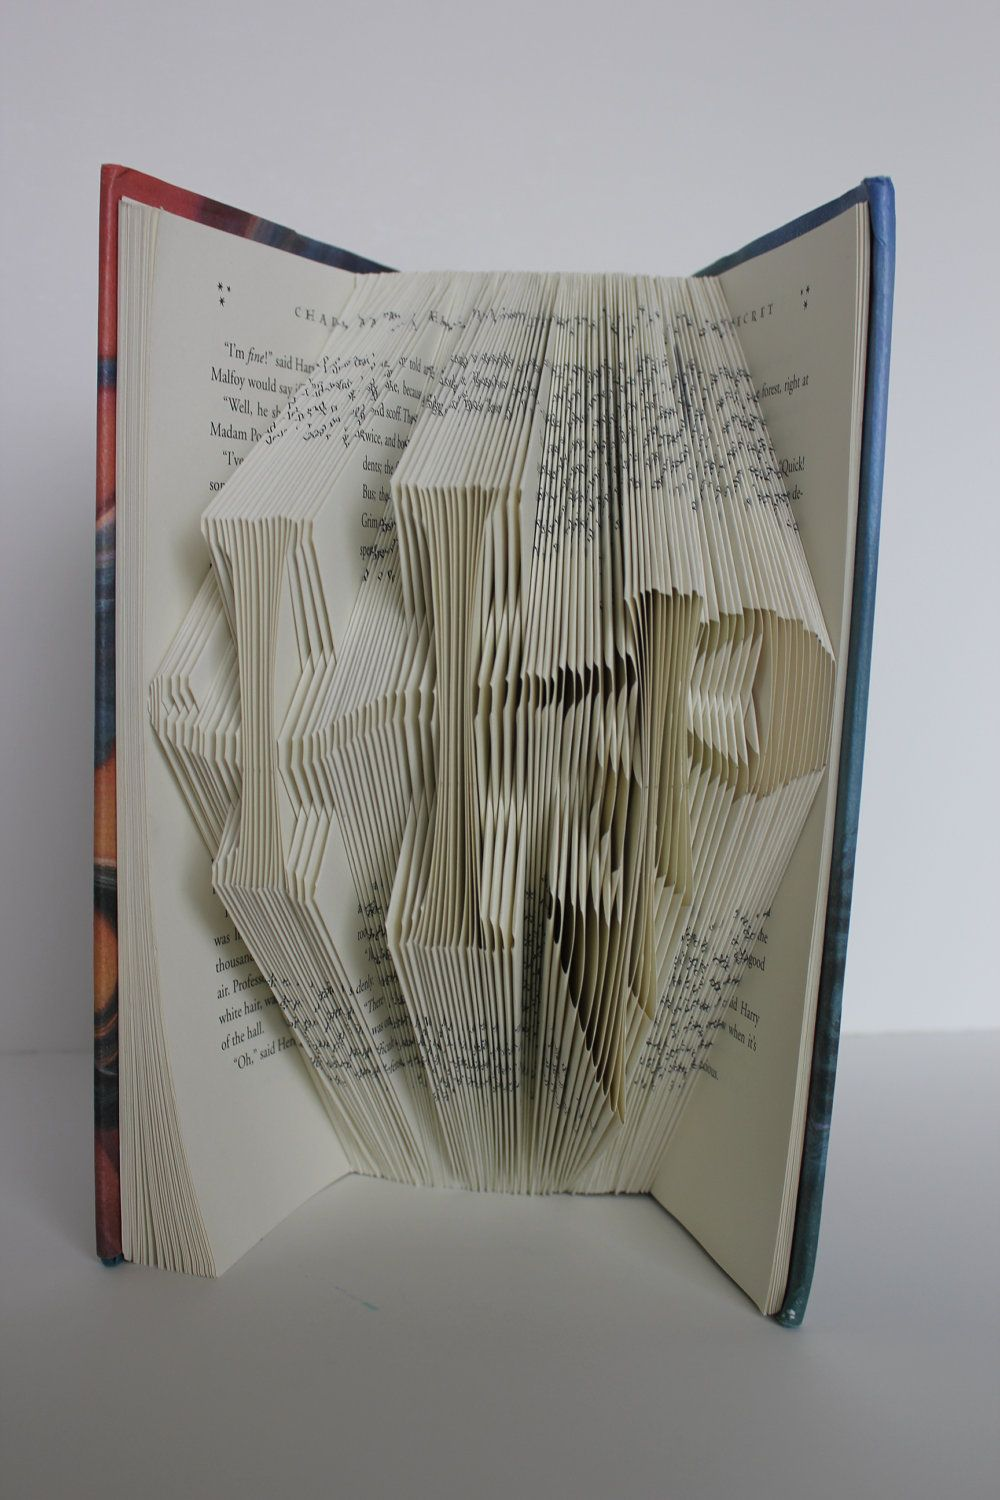 Harry Potter Book That Has Pages Cut Out Spell Hp Thats The Recycled Computer Circuit Board Geekery Bookends For Bookworm Original Caption As Me Youd Better Run Far Away If You Take A Pair Of Scissors To My